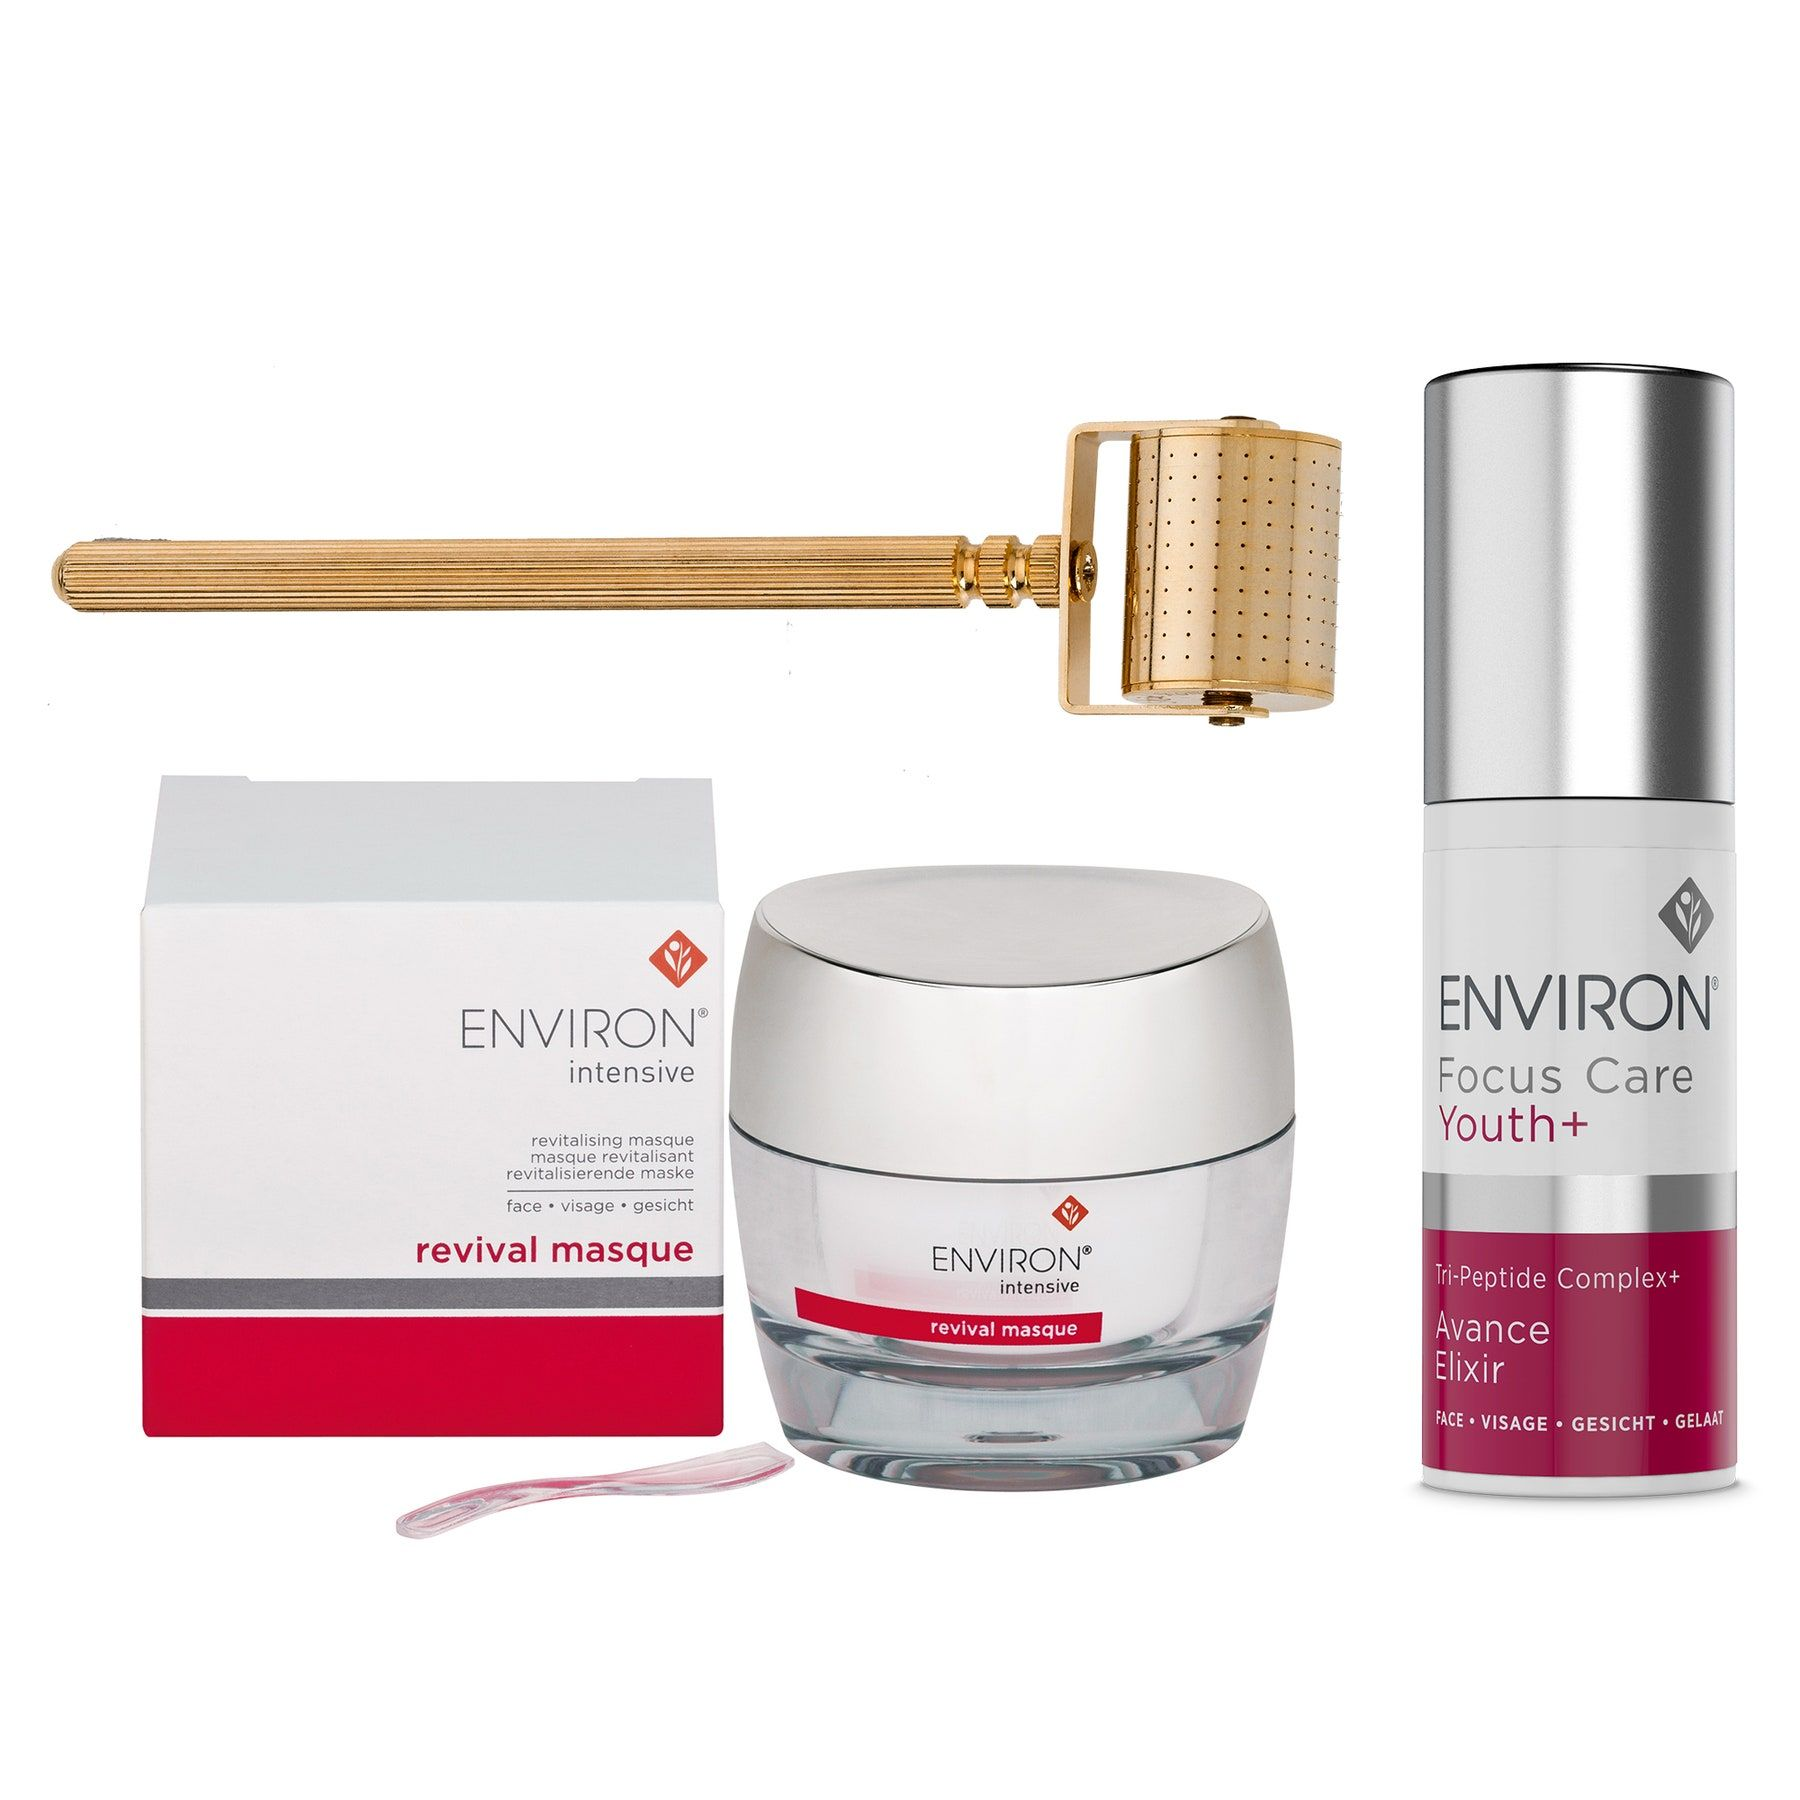 6 Best Skin Care Brands By Dermatologists And Plastic Surgeons Allure Best Skin Care Brands Skin Care Good Skin